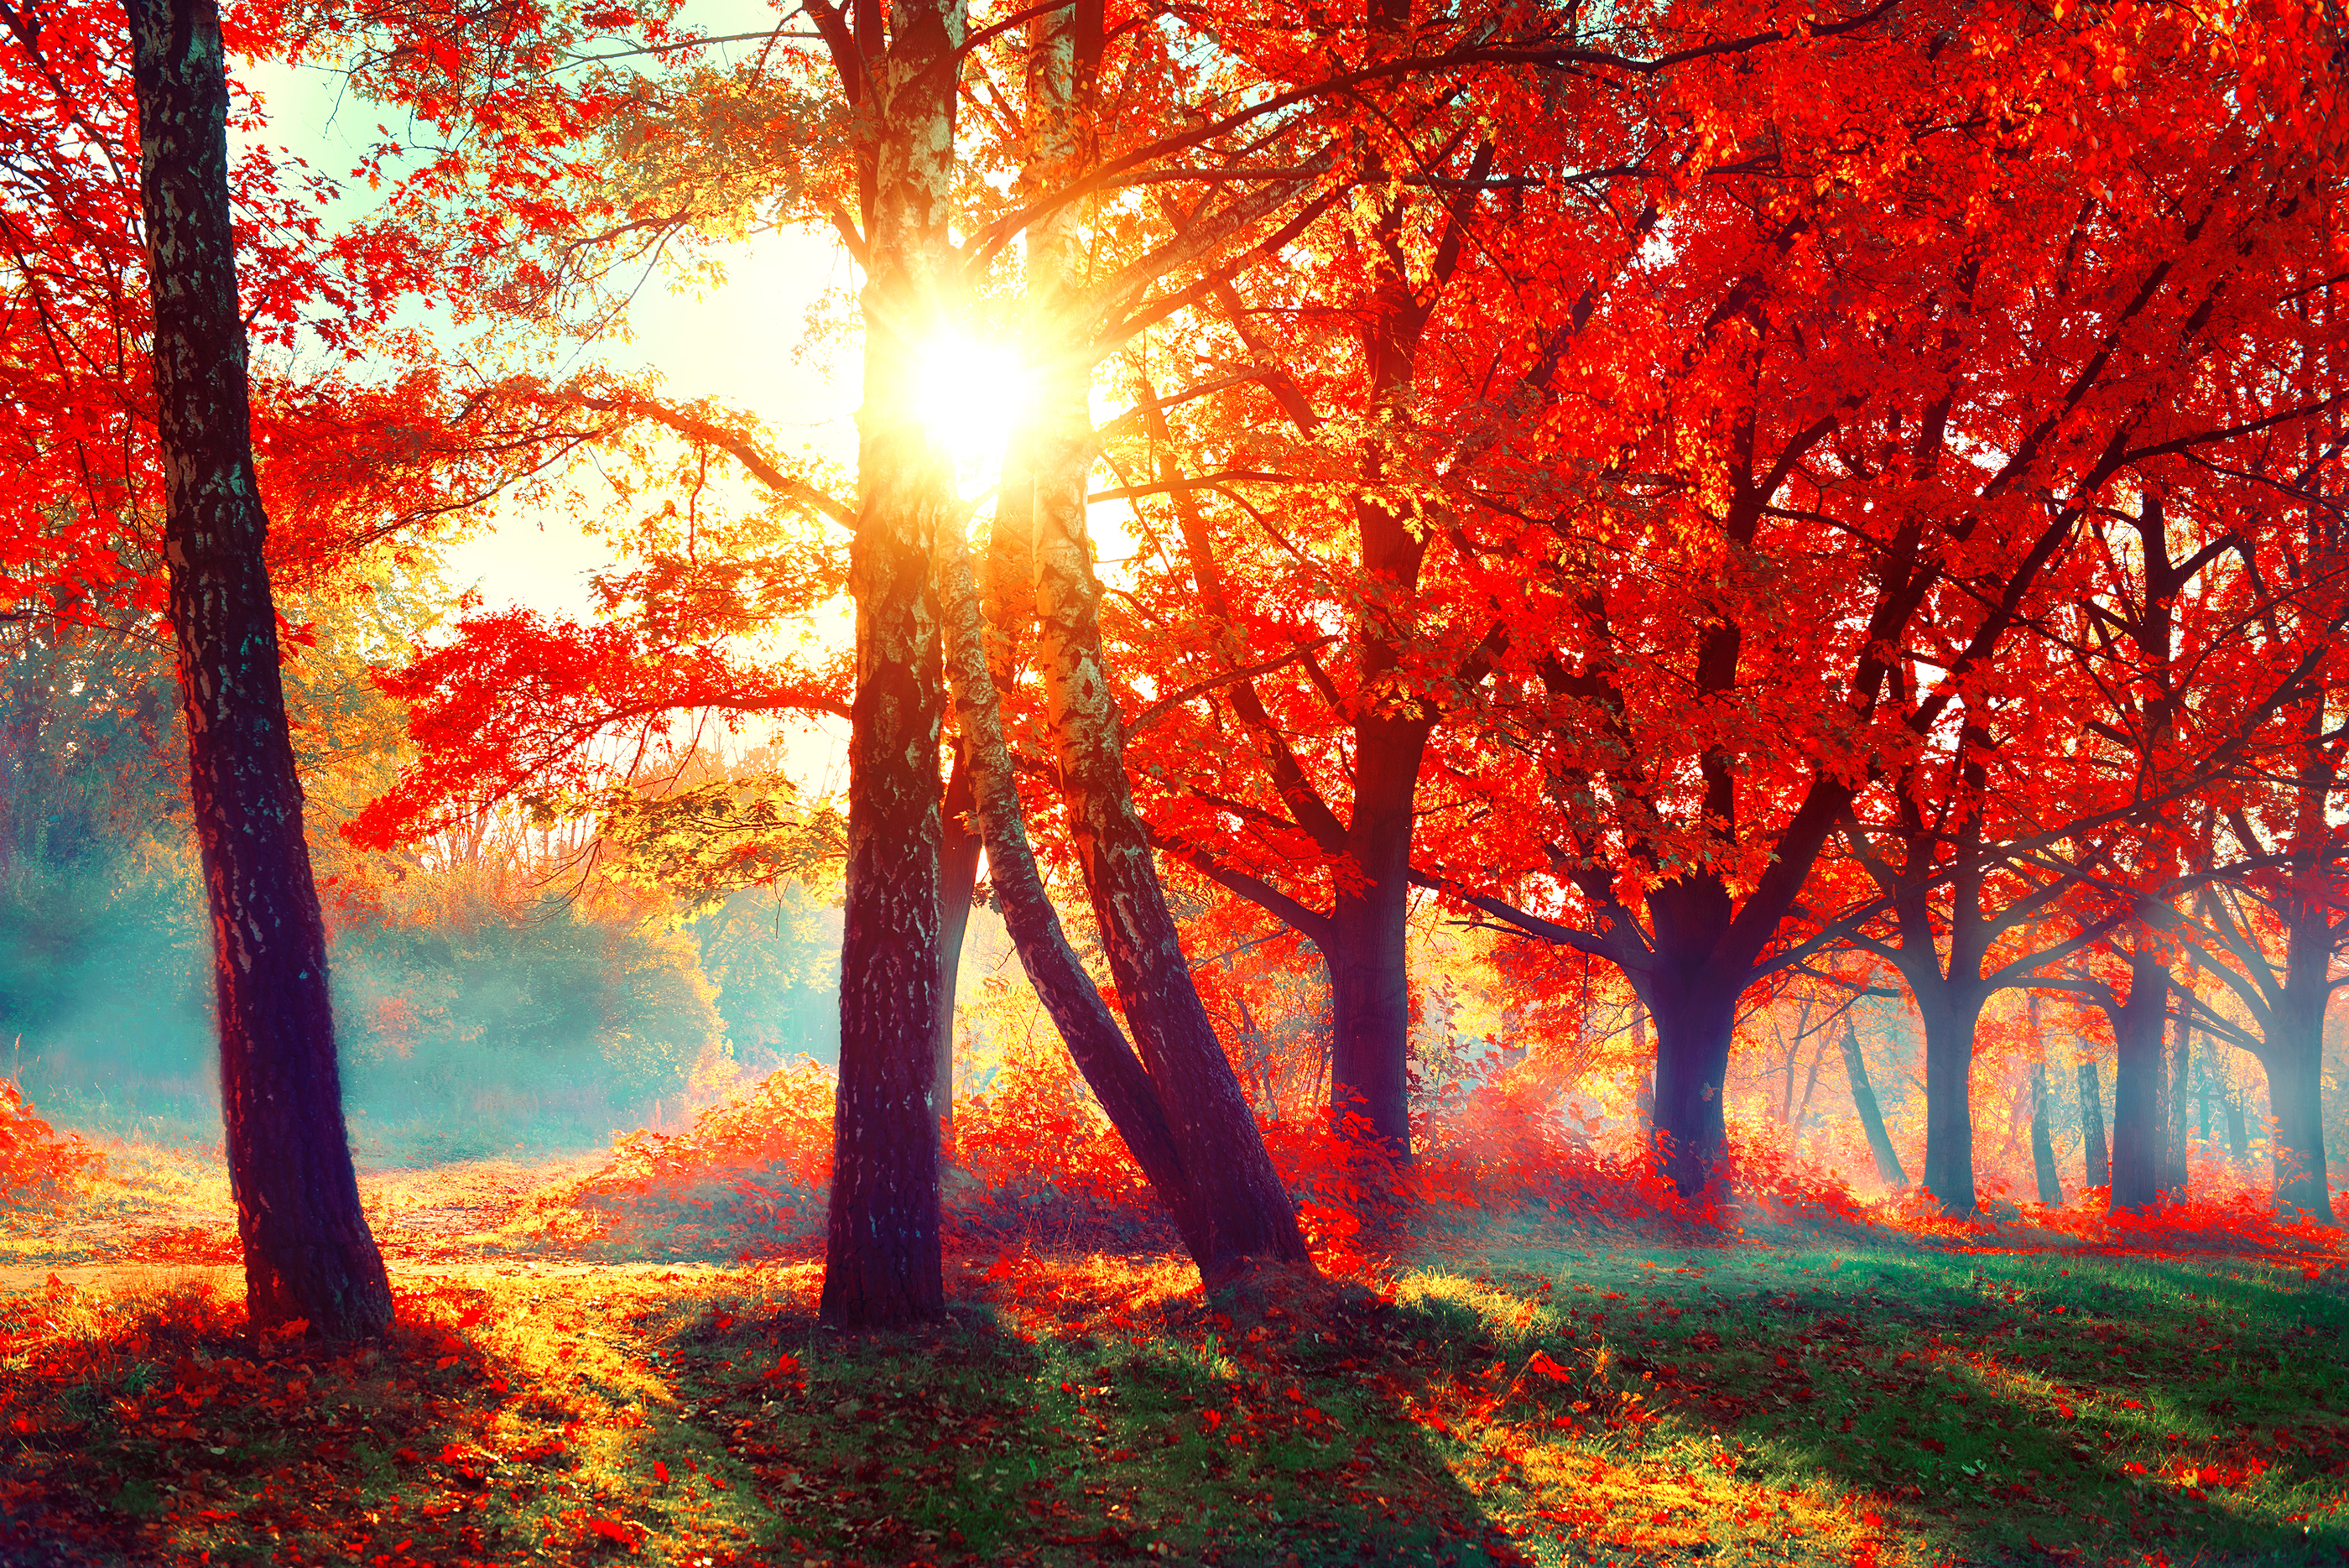 fall facts autumn scene fantastic nature landscape forest leaves trees beauty autumnal services